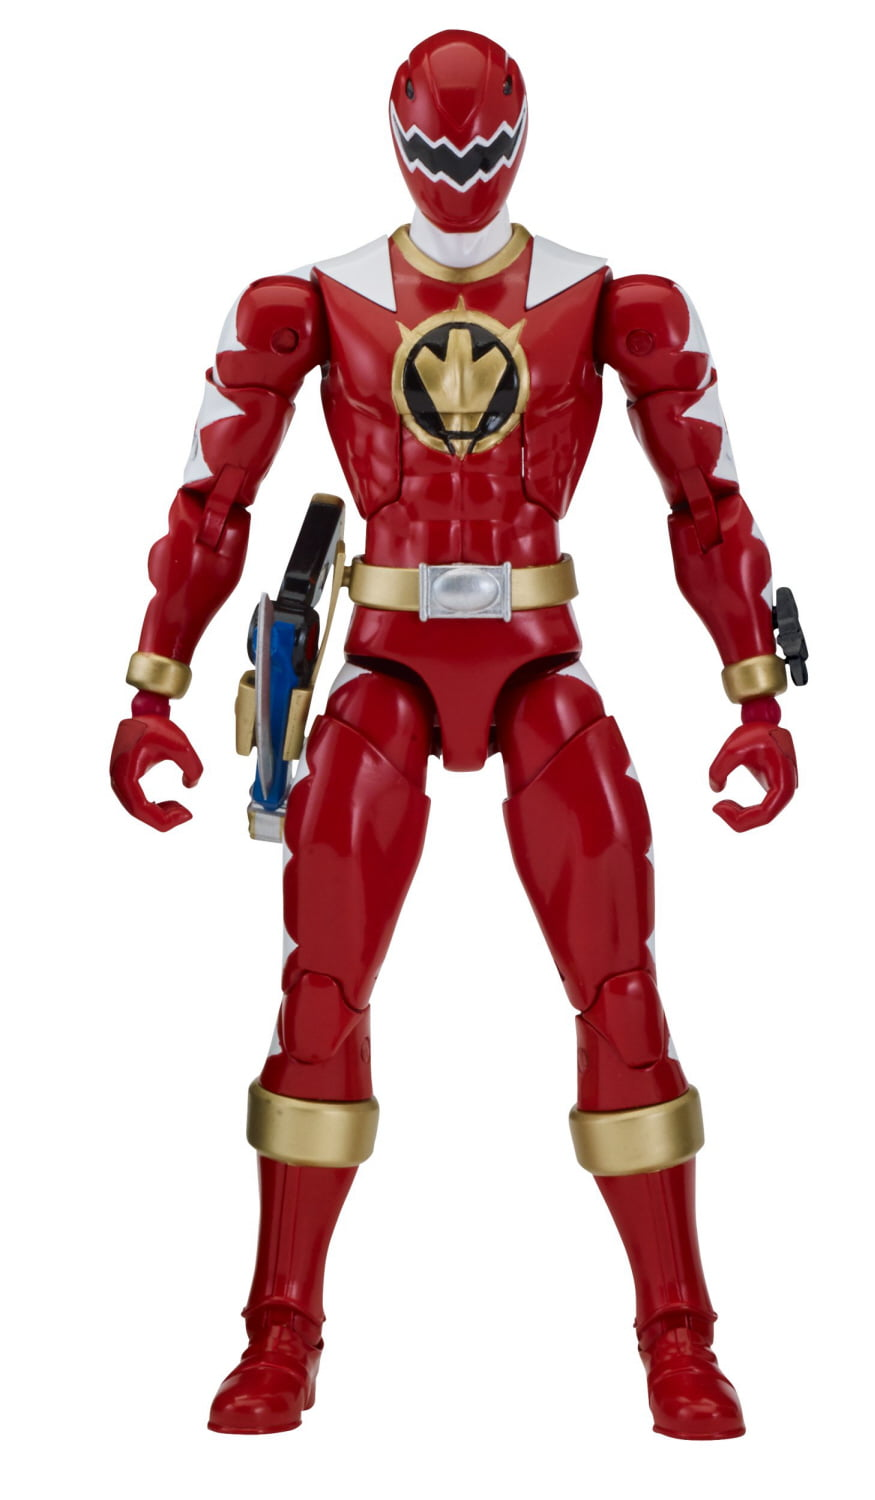 Bandai Power Rangers Legacy Collectable 6.5 inch Figure Dino Thunder Red by Bandai America, Inc.